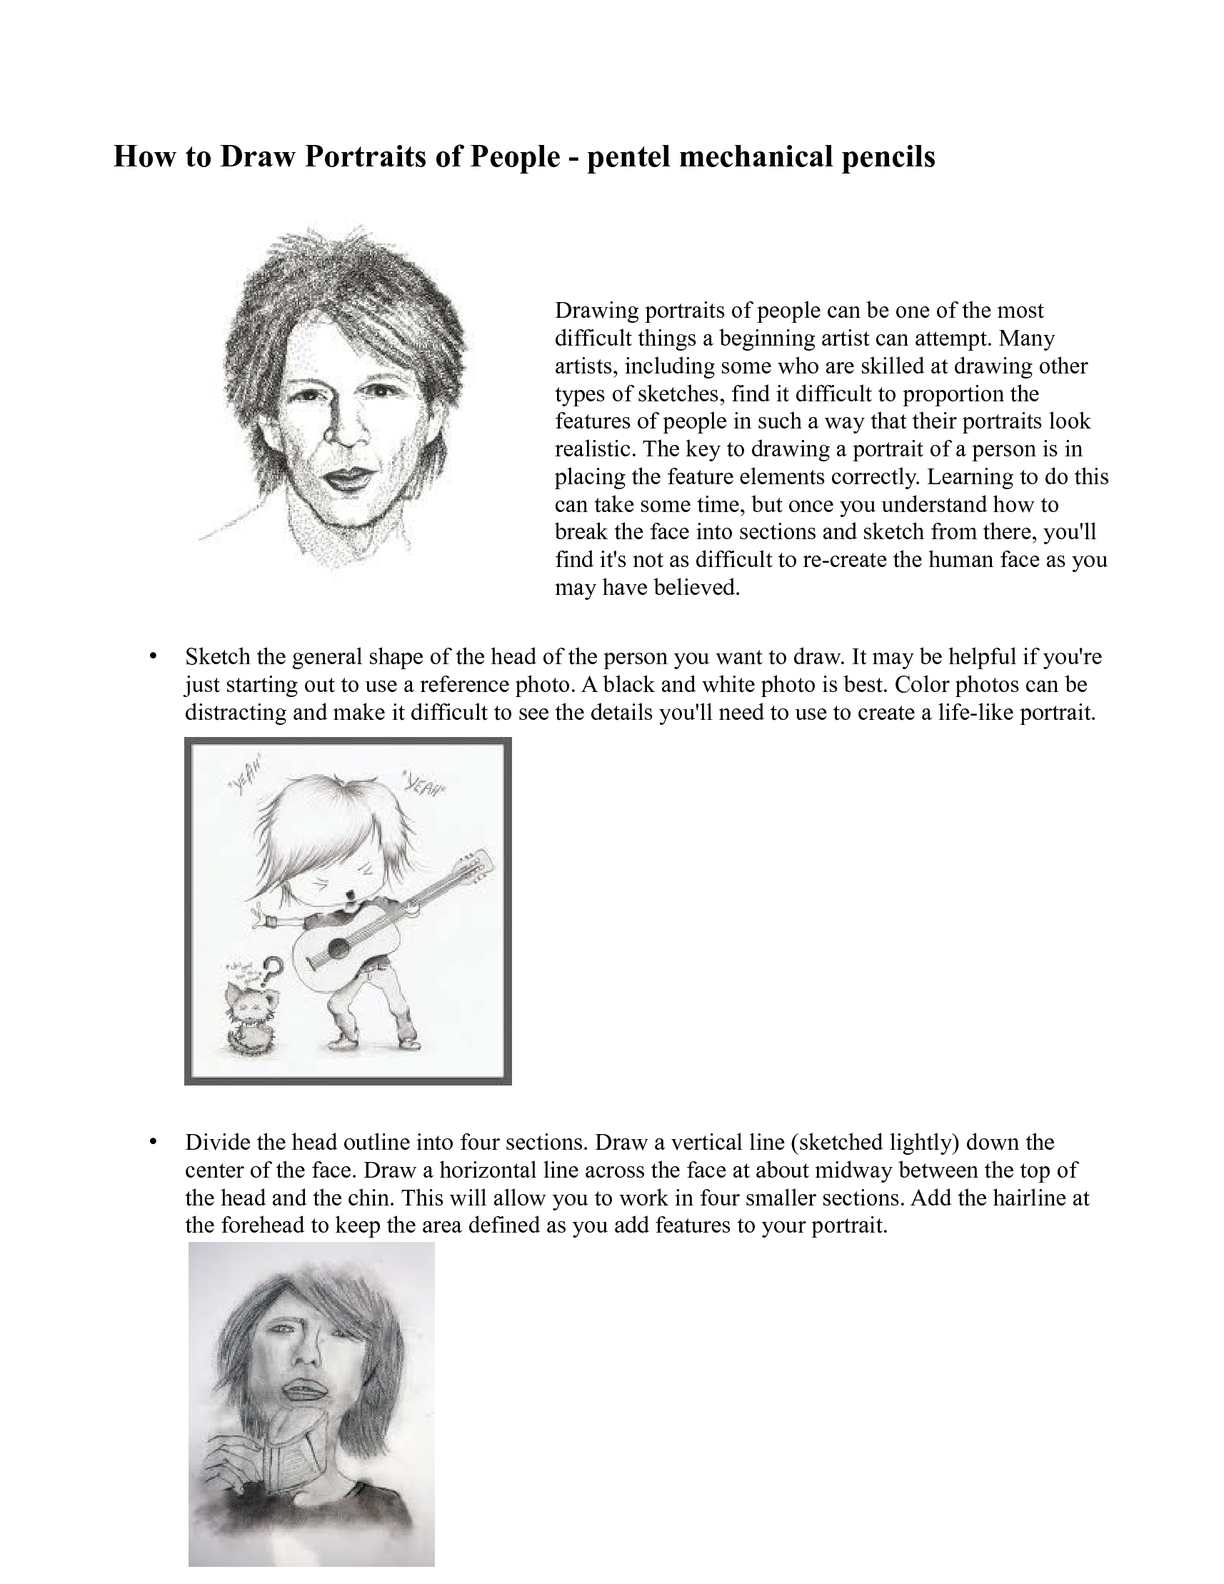 Calaméo - How to Draw Portraits of People - pentel